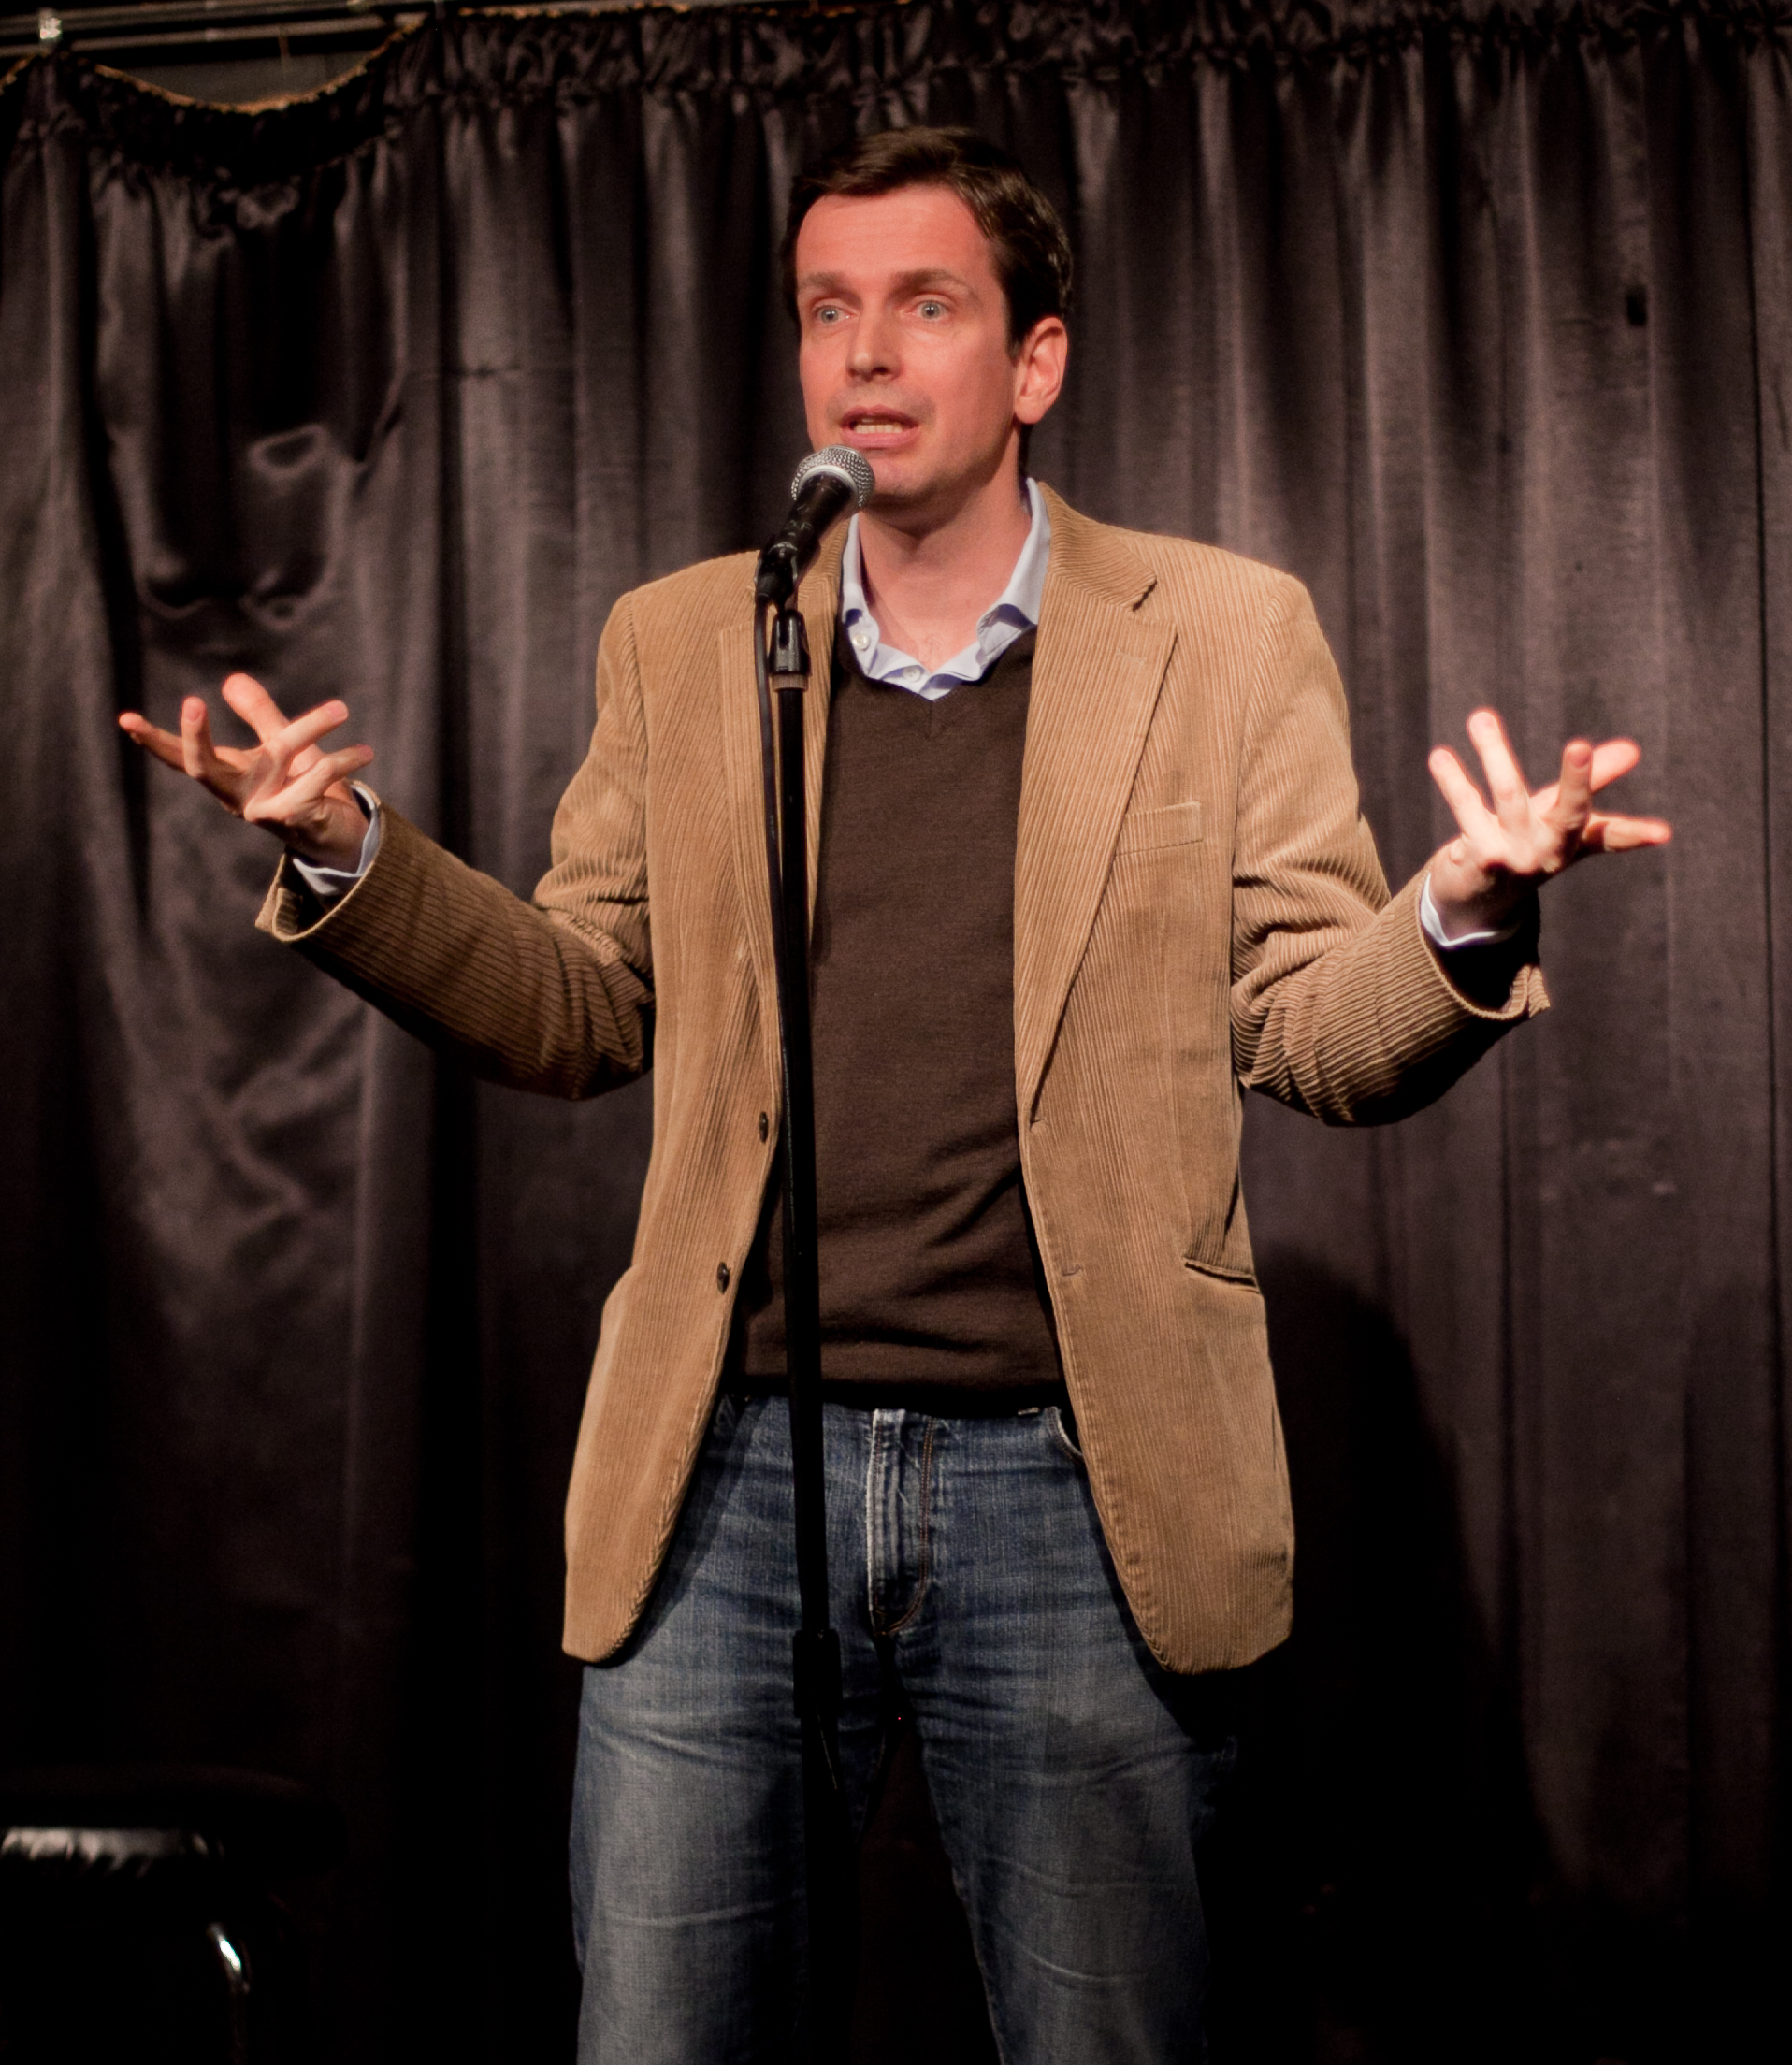 How to Become a Comedian - TheArtCareerProject.com